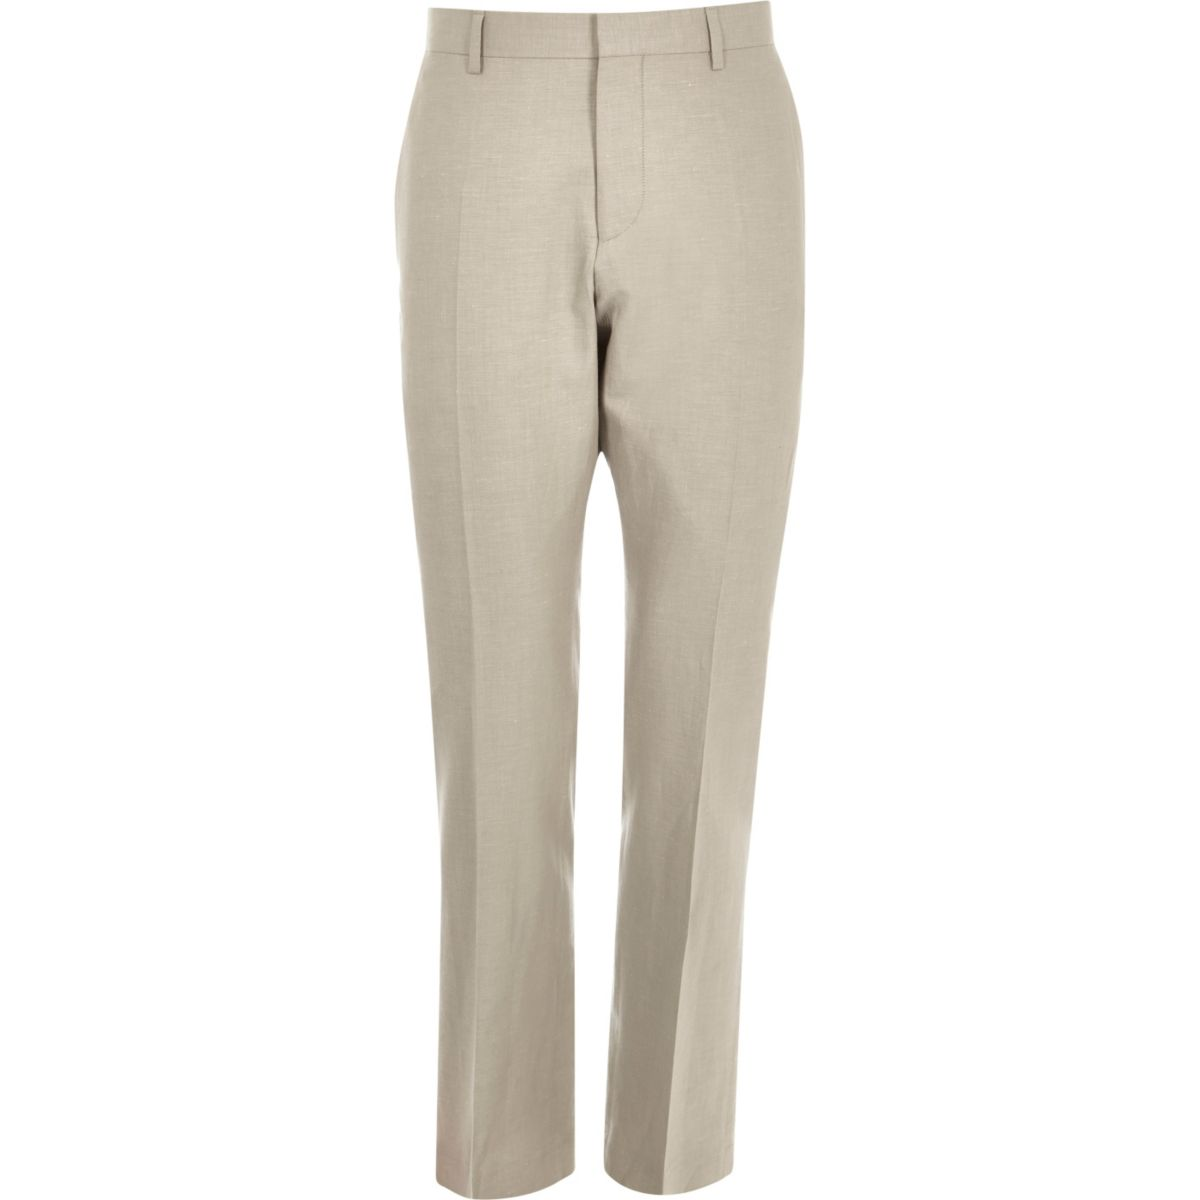 Beige linen-blend slim suit trousers